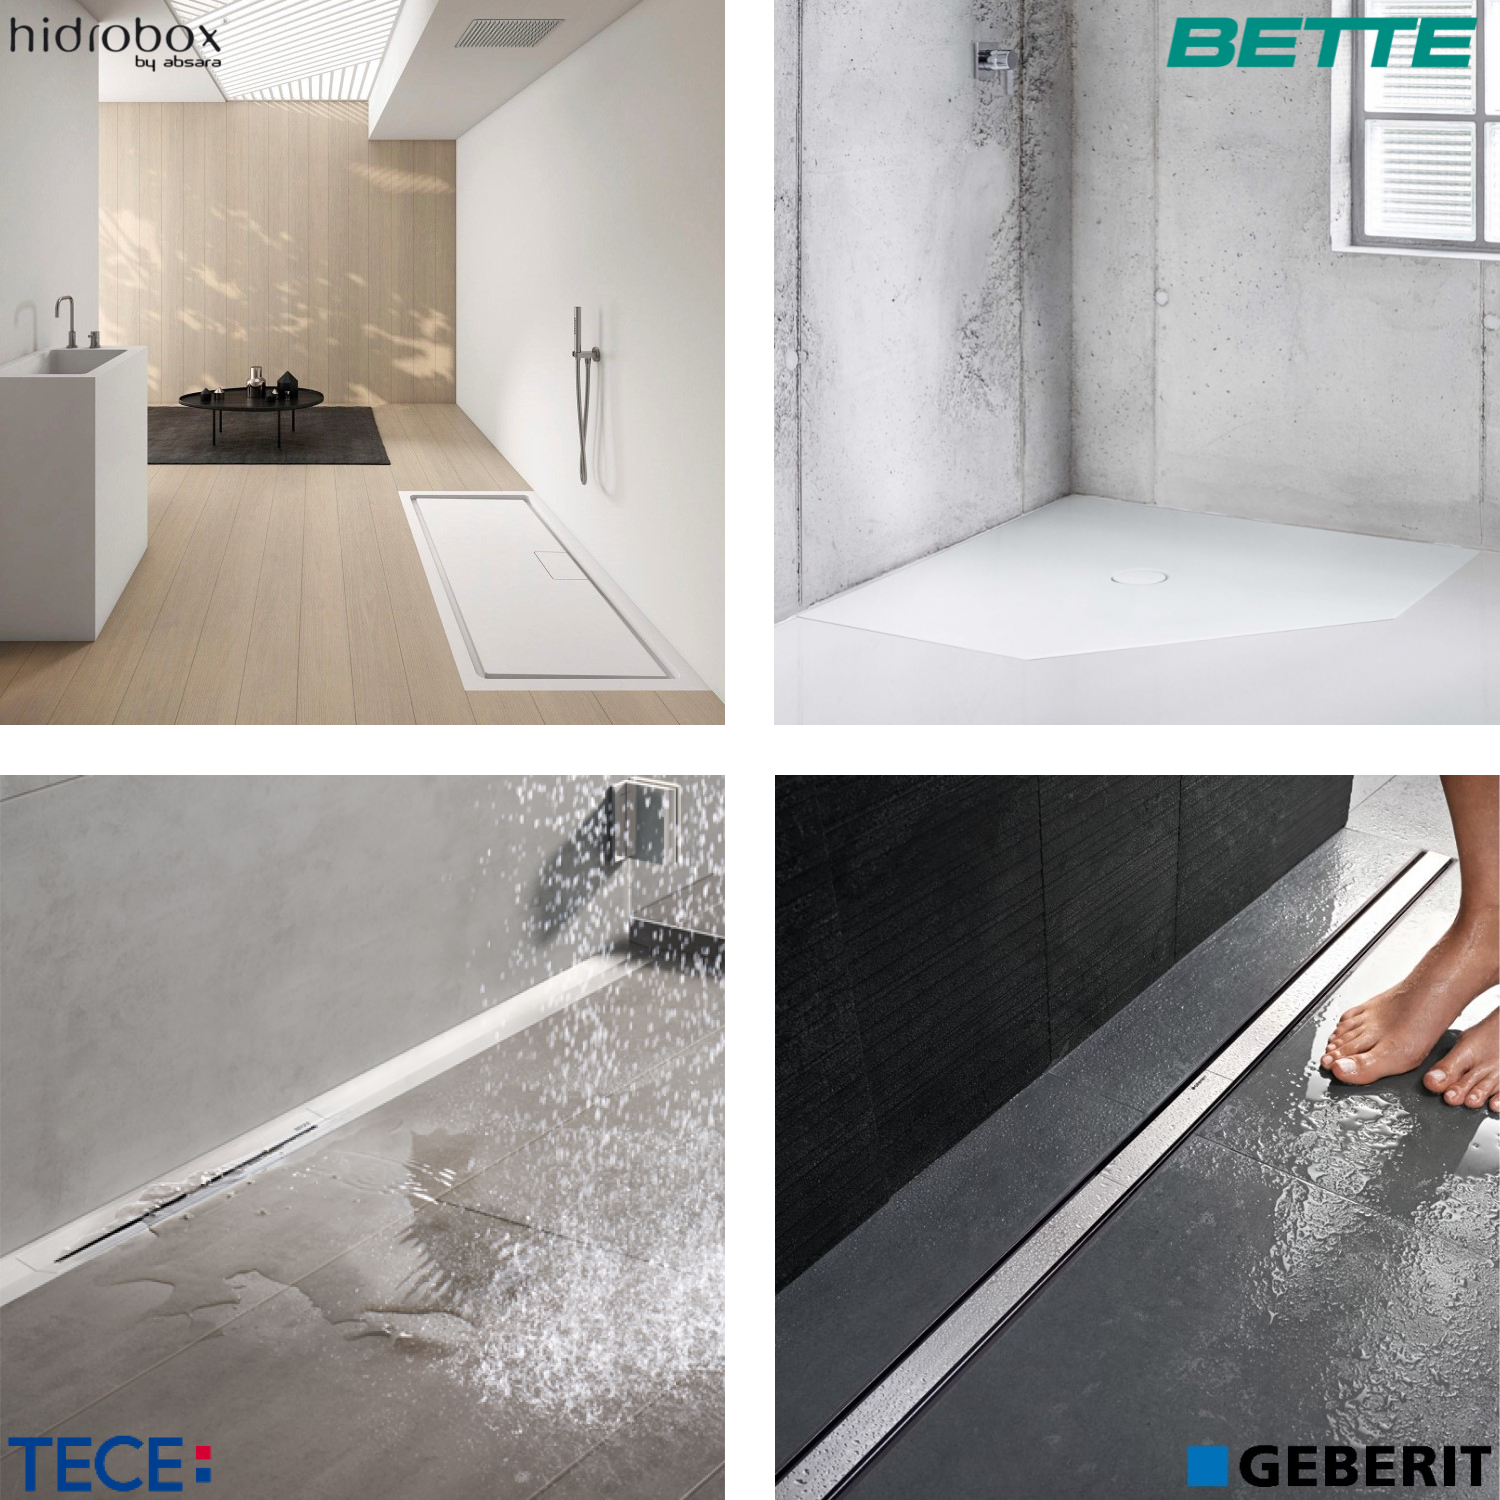 Wetroom Drain - Shower Tray Newsletter